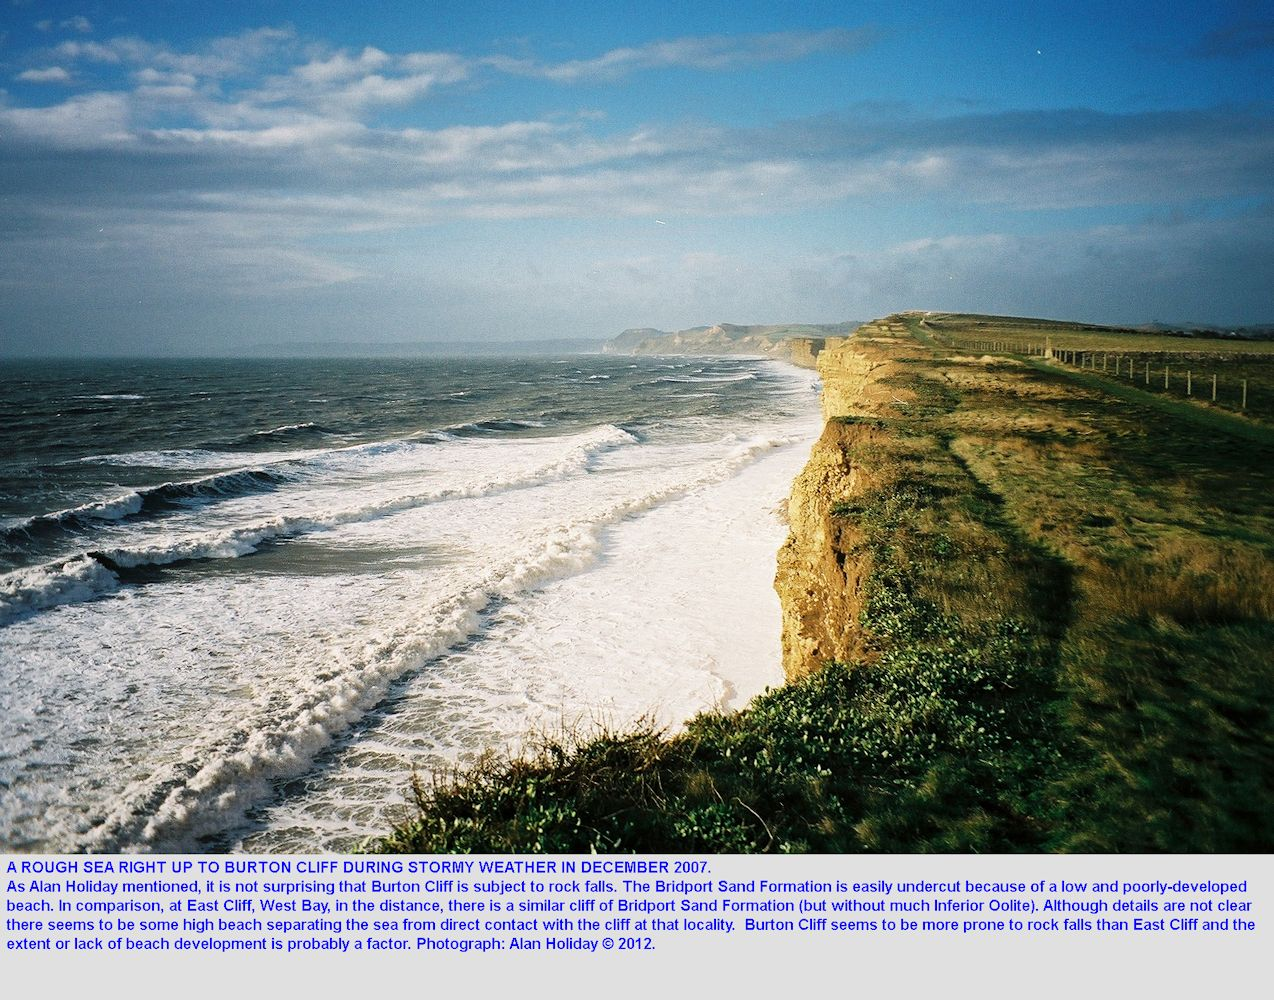 Photograph of rough sea at Burton Cliff, Burton Bradstock, Dorset, by Alan Holiday in 2007